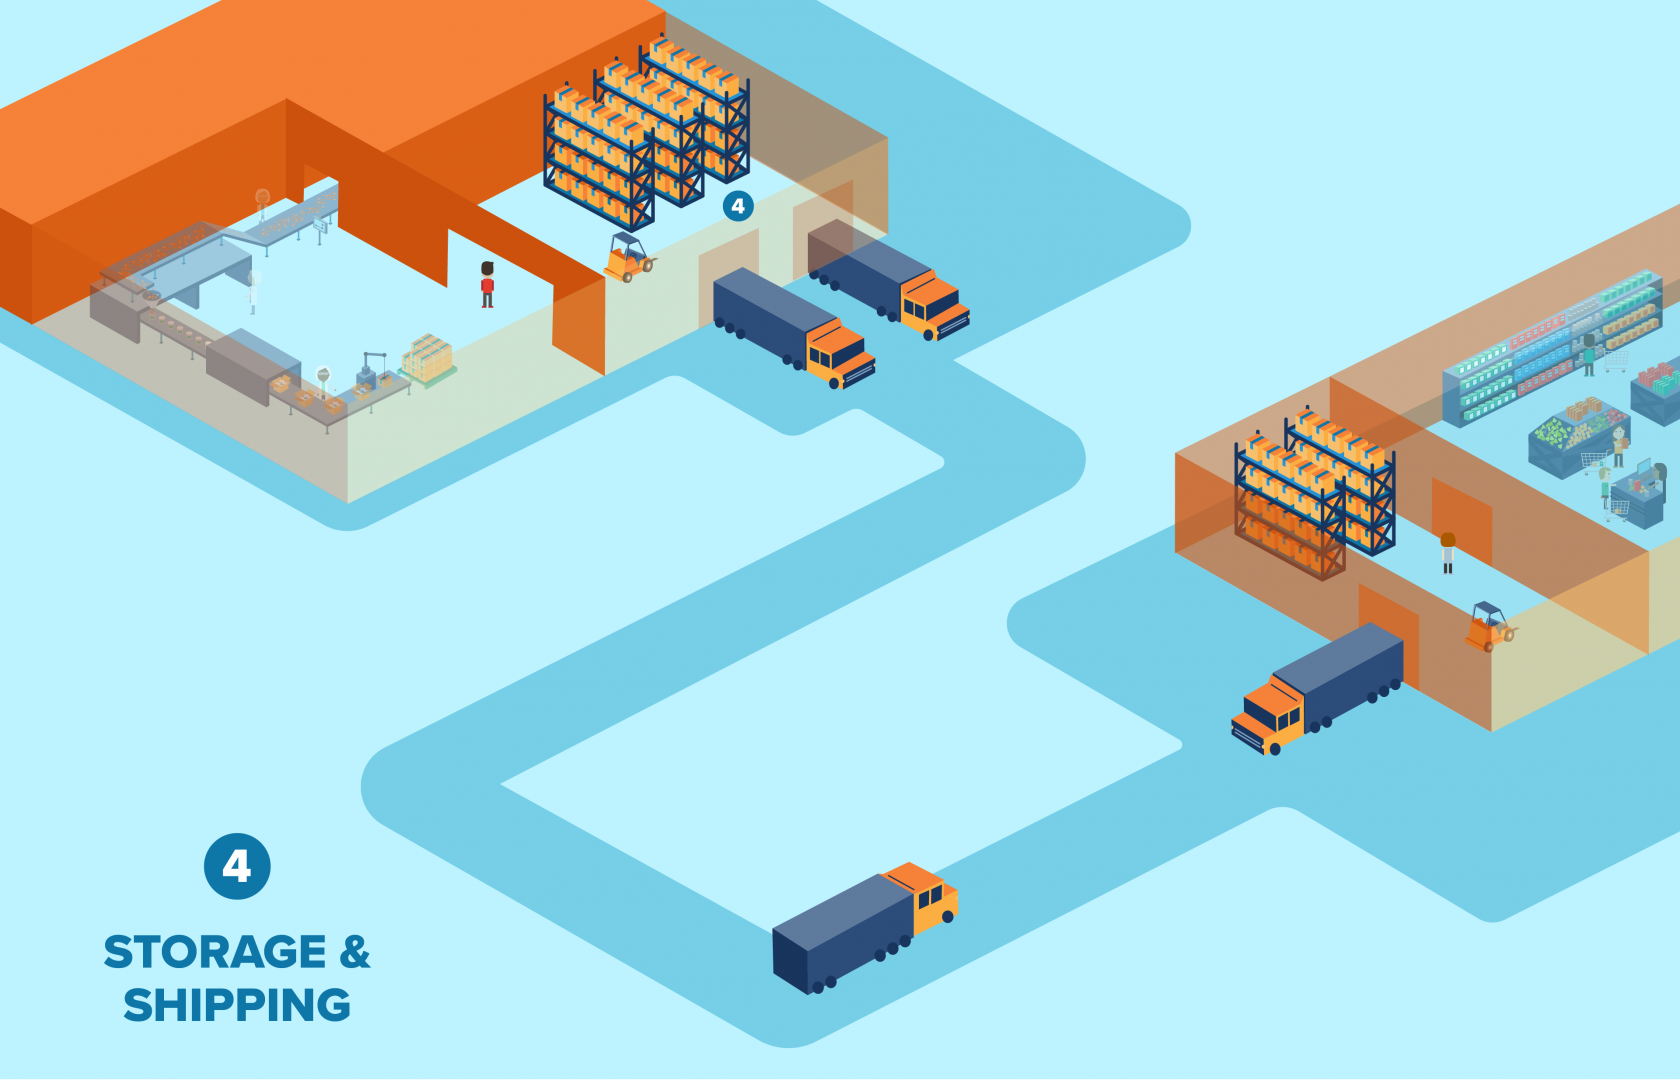 Storage and shipping impact on food packaging